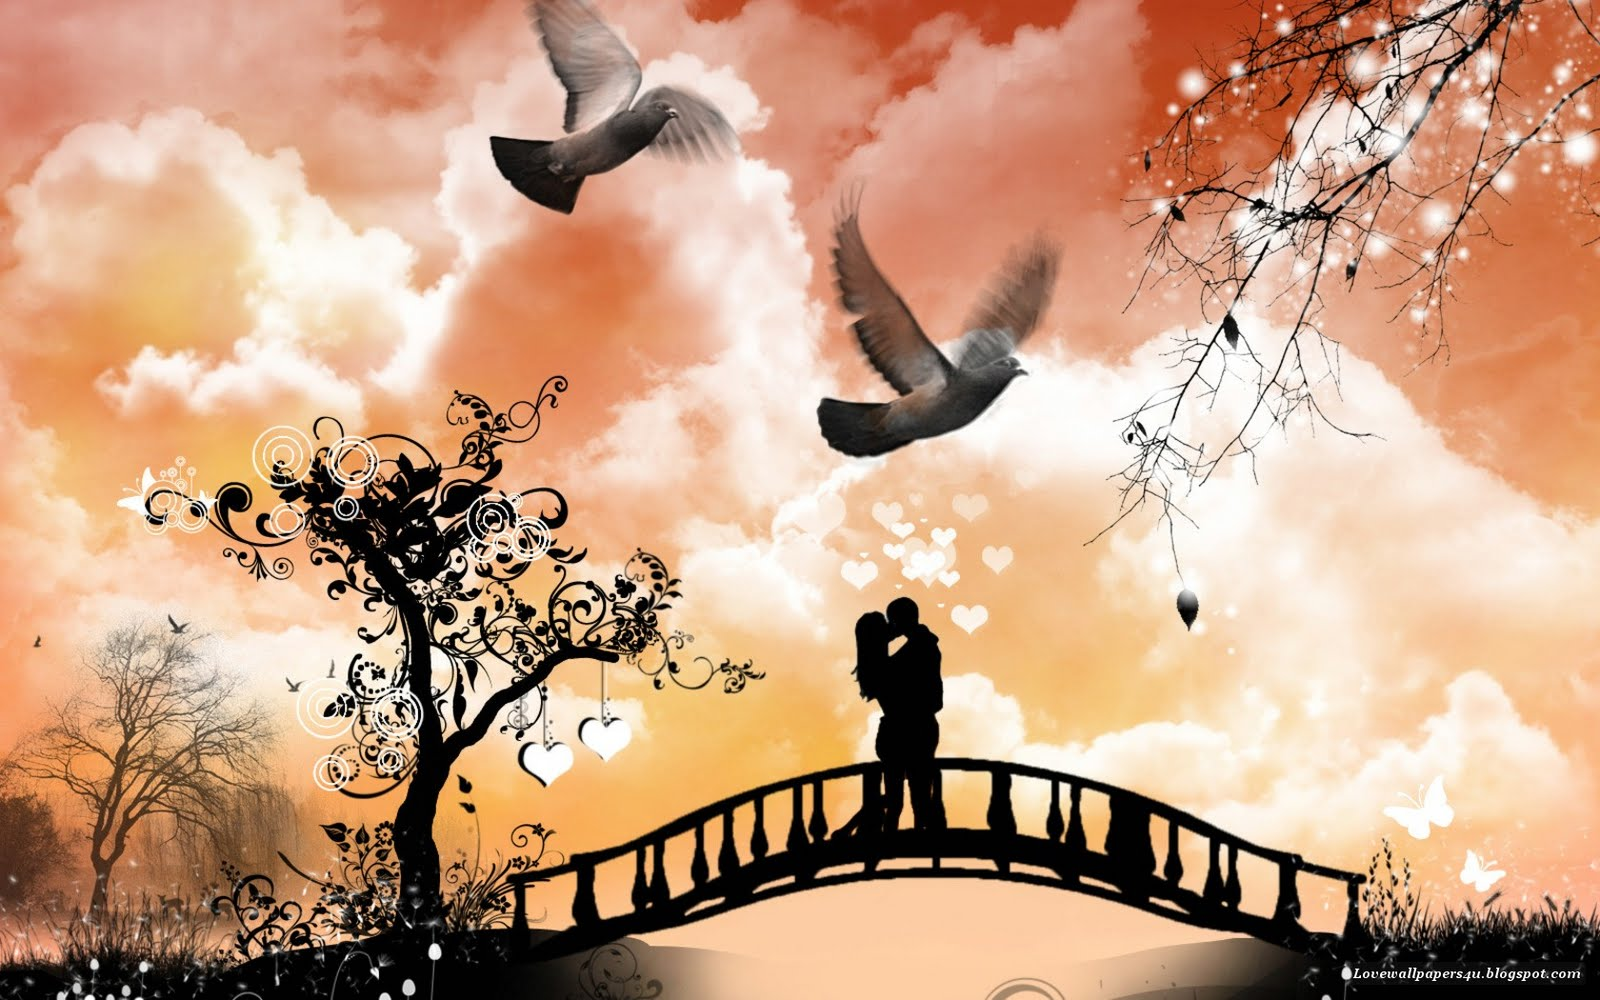 Romantic Love Wallpapers For Desktop